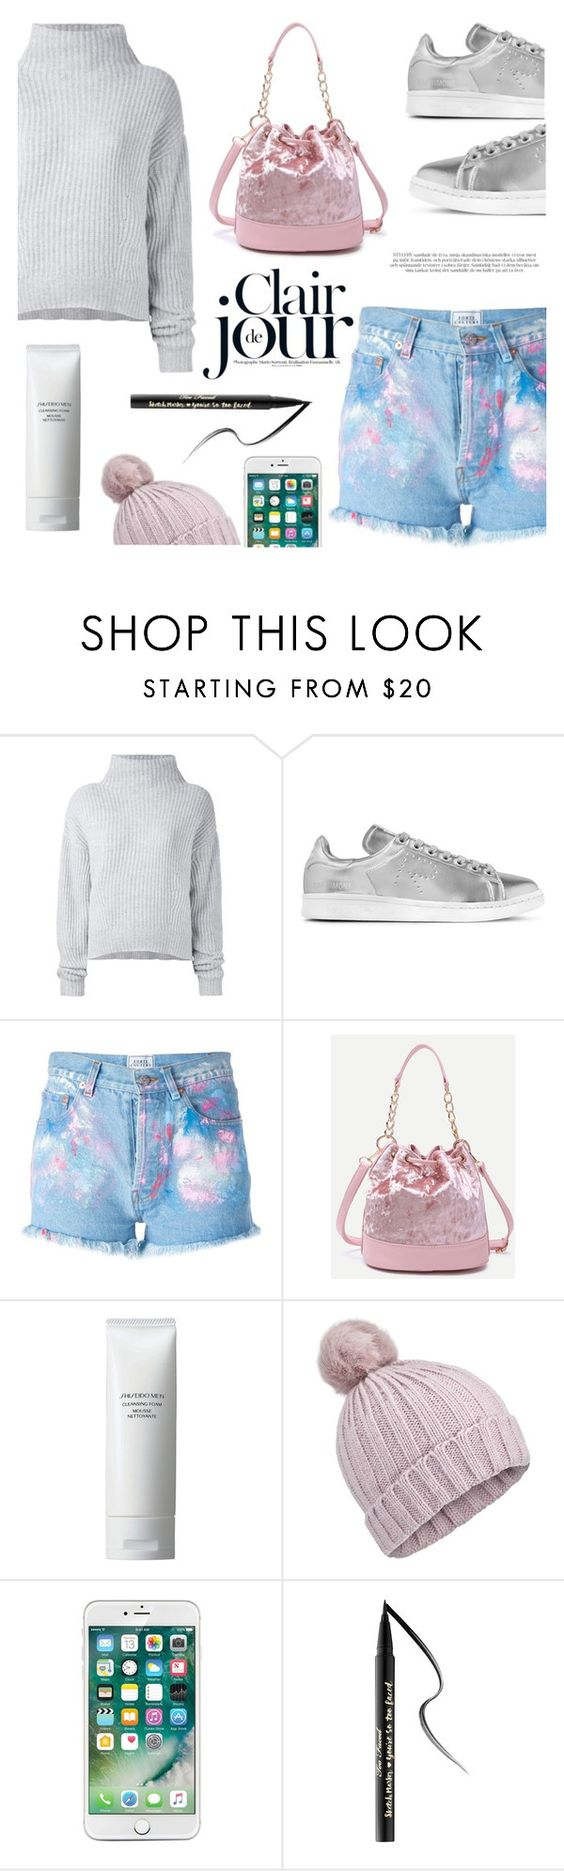 """Ten feet tall"" by nadialesa ❤ liked on Polyvore featuring Le Kasha, adidas Originals, Forte Couture, Shiseido, Miss Selfridge and Too Faced Cosmetics"